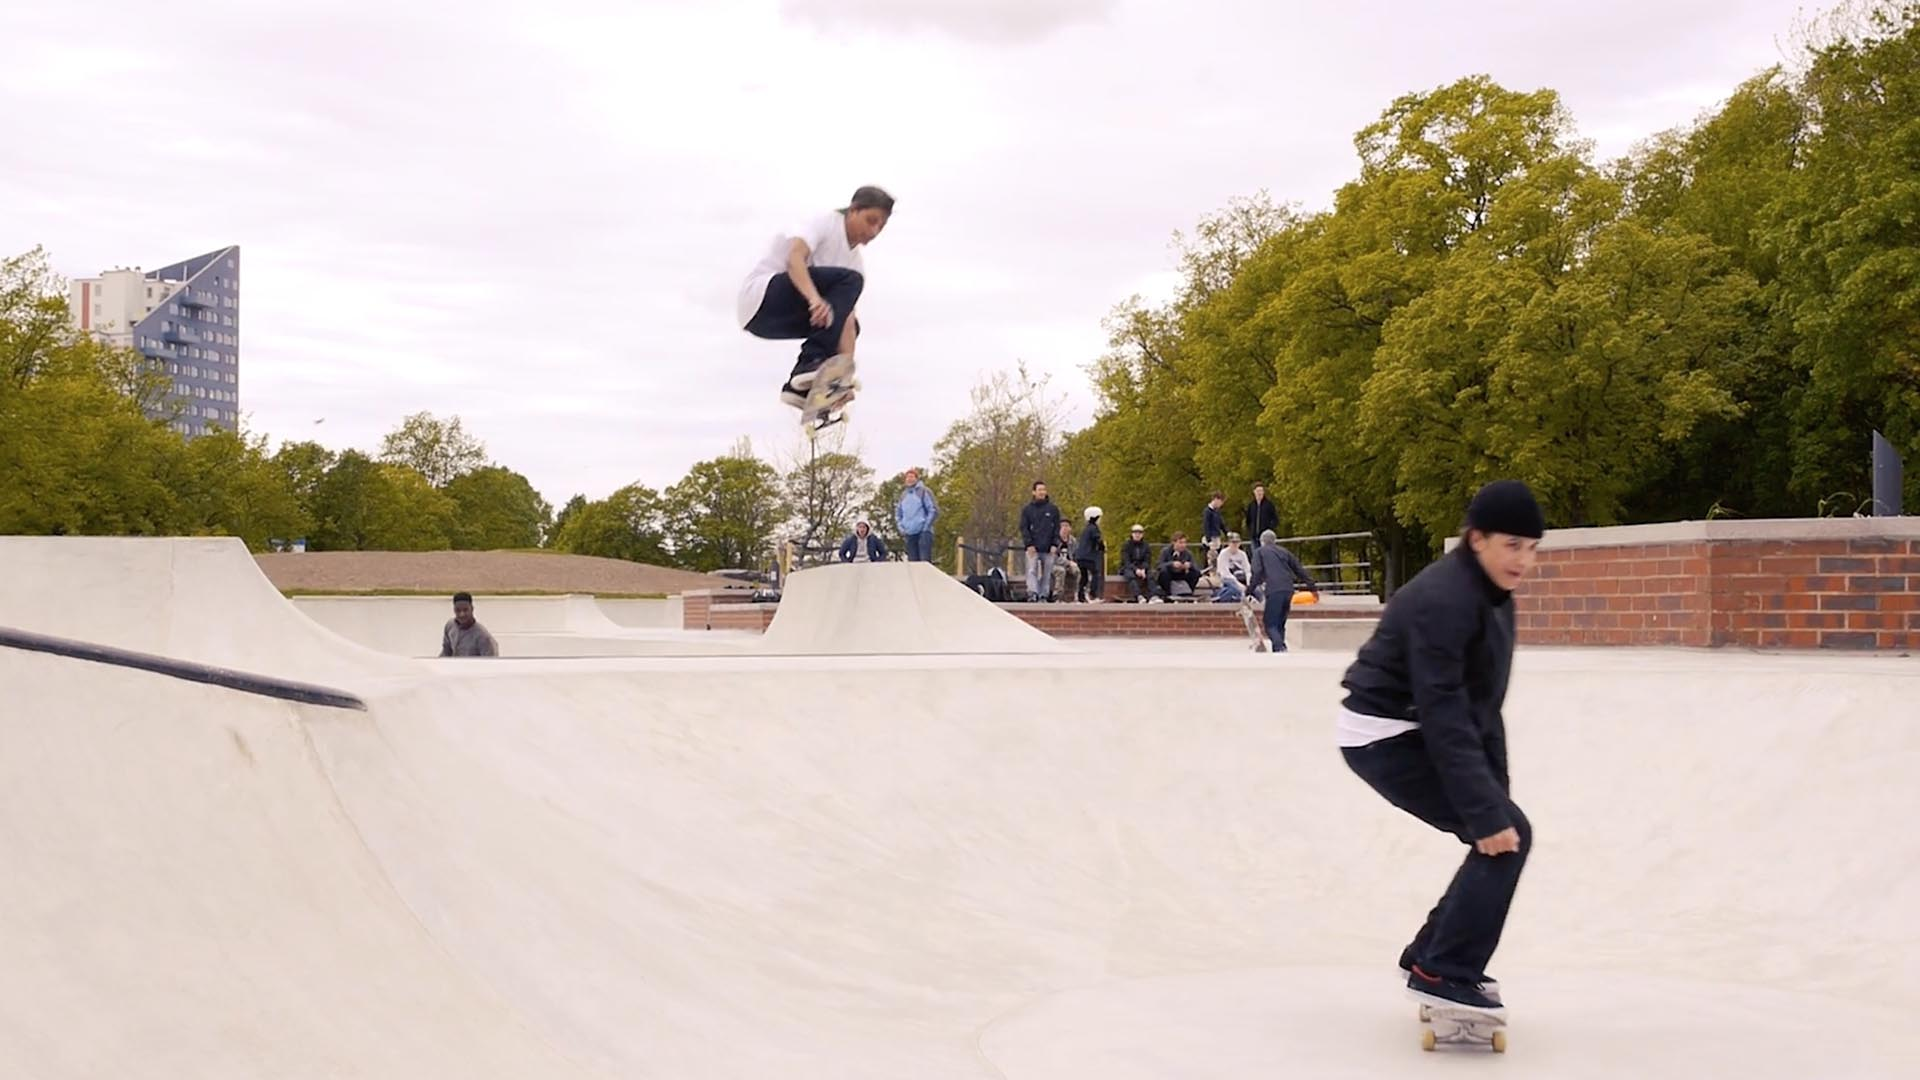 The Bryggeriet skate school in Malmö, Sweden, which features a large skatepark in the middle of its campus